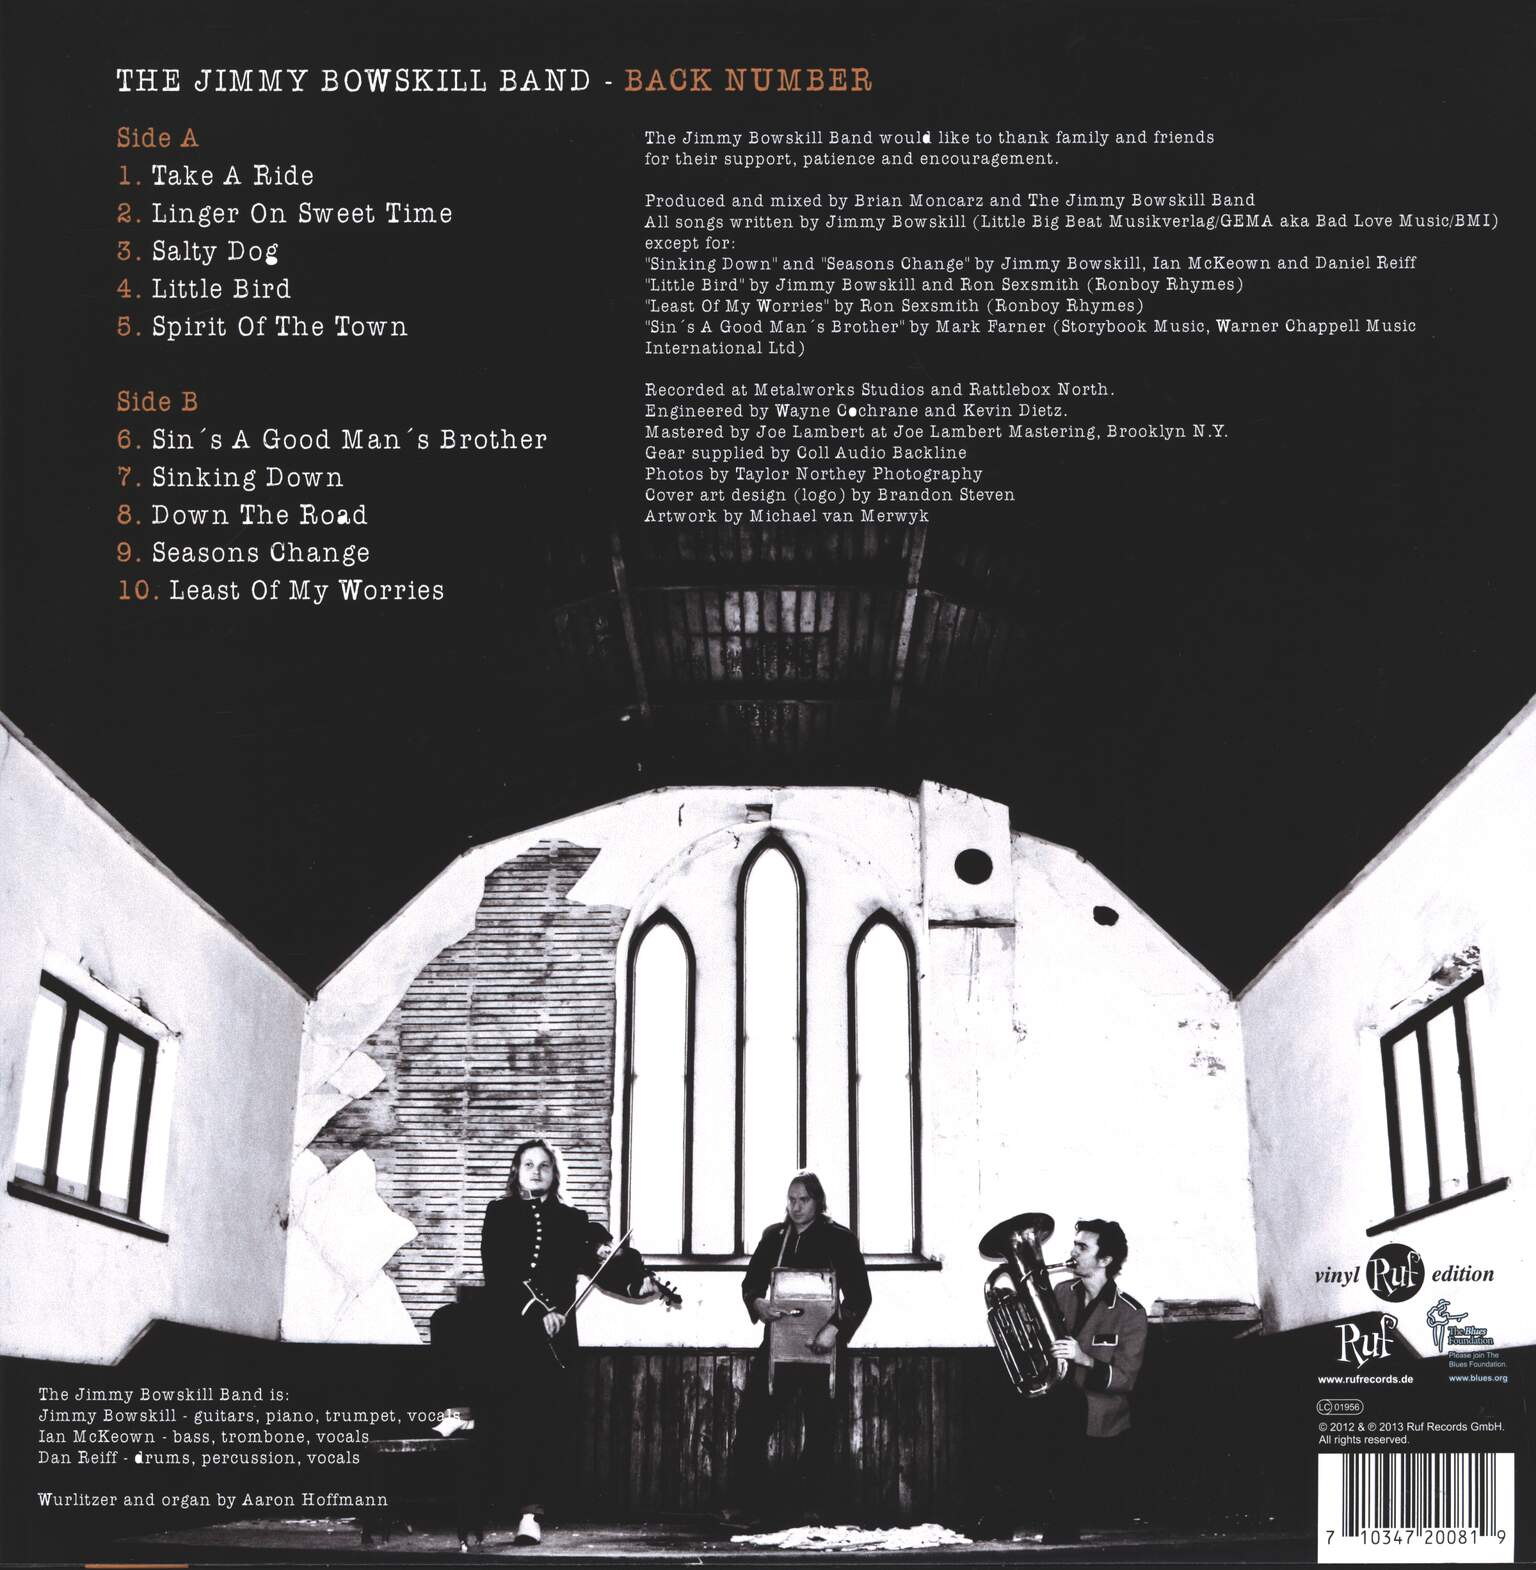 The Jimmy Bowskill Band: Back Number, 1×LP (Vinyl)